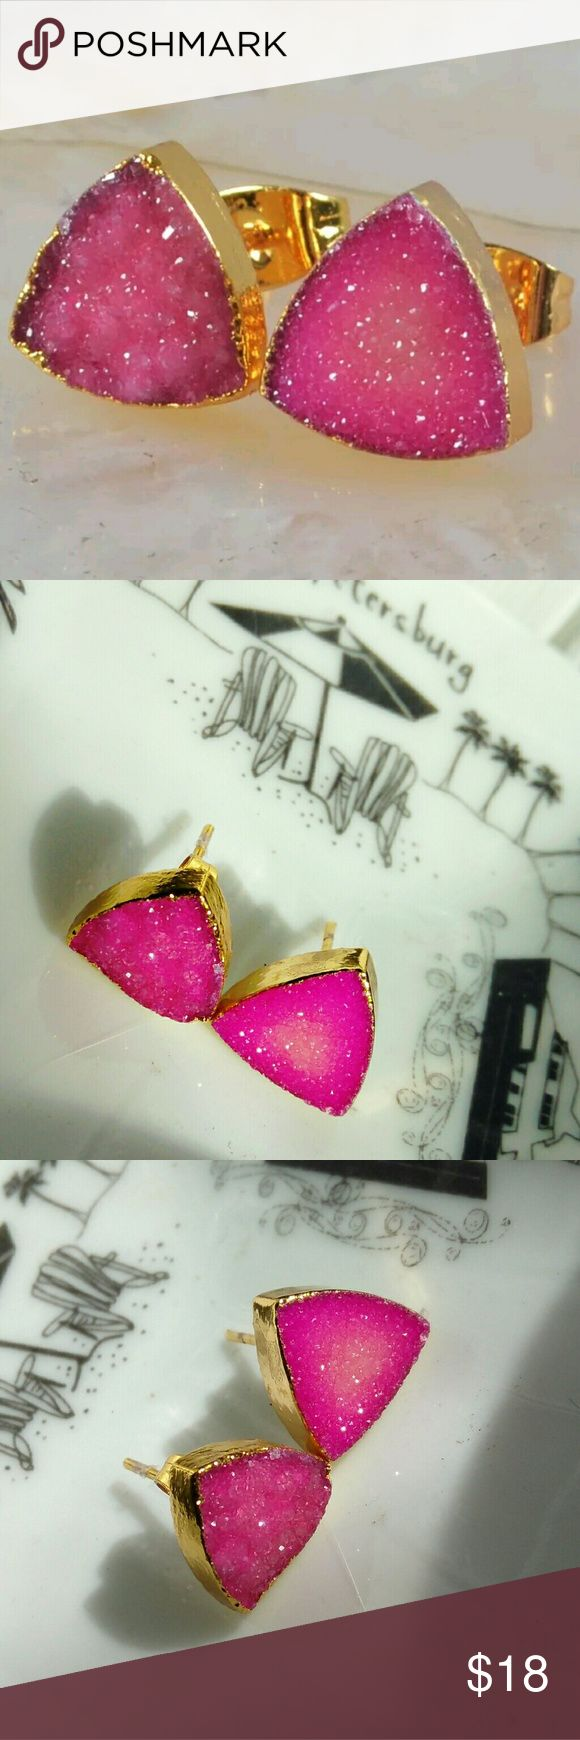 Pink Triangle Druzy stud earrings 10 mm  Striking bright pink colored Druzy earrings   Perfect for brightening your spring wardrobe  It's a Natural product so please note that while this is a pair, the two earrings are not perfectly identical The first picture shows it the best Jewelry Earrings